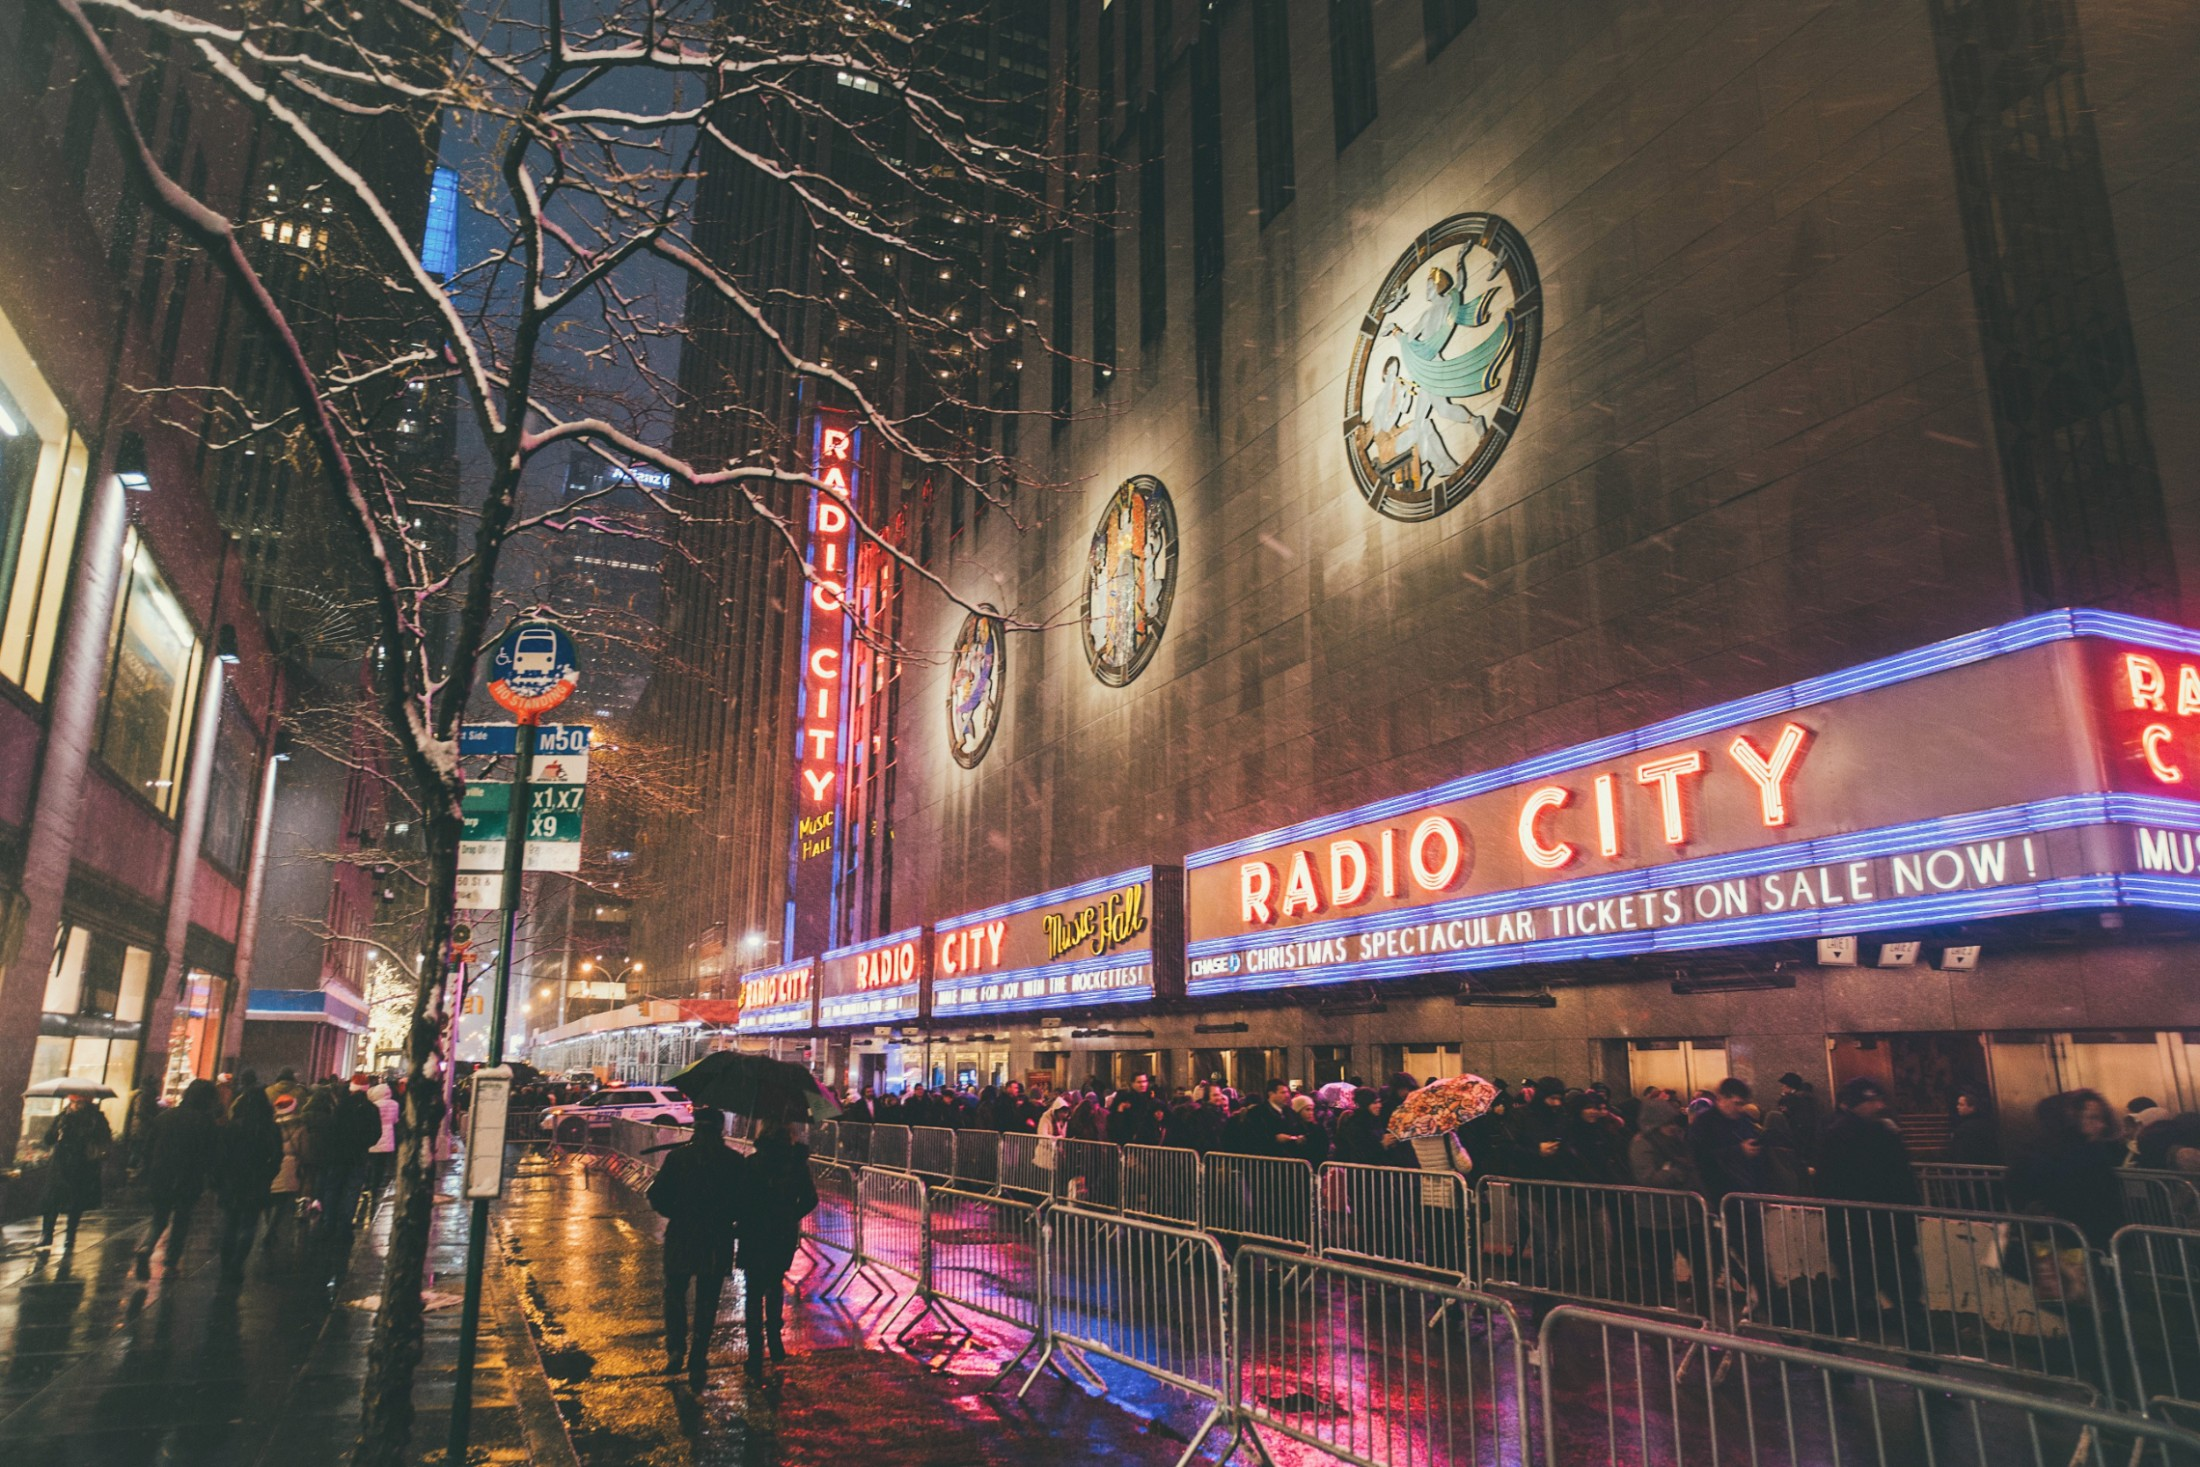 The Marquee outside of Radio City Music Hall